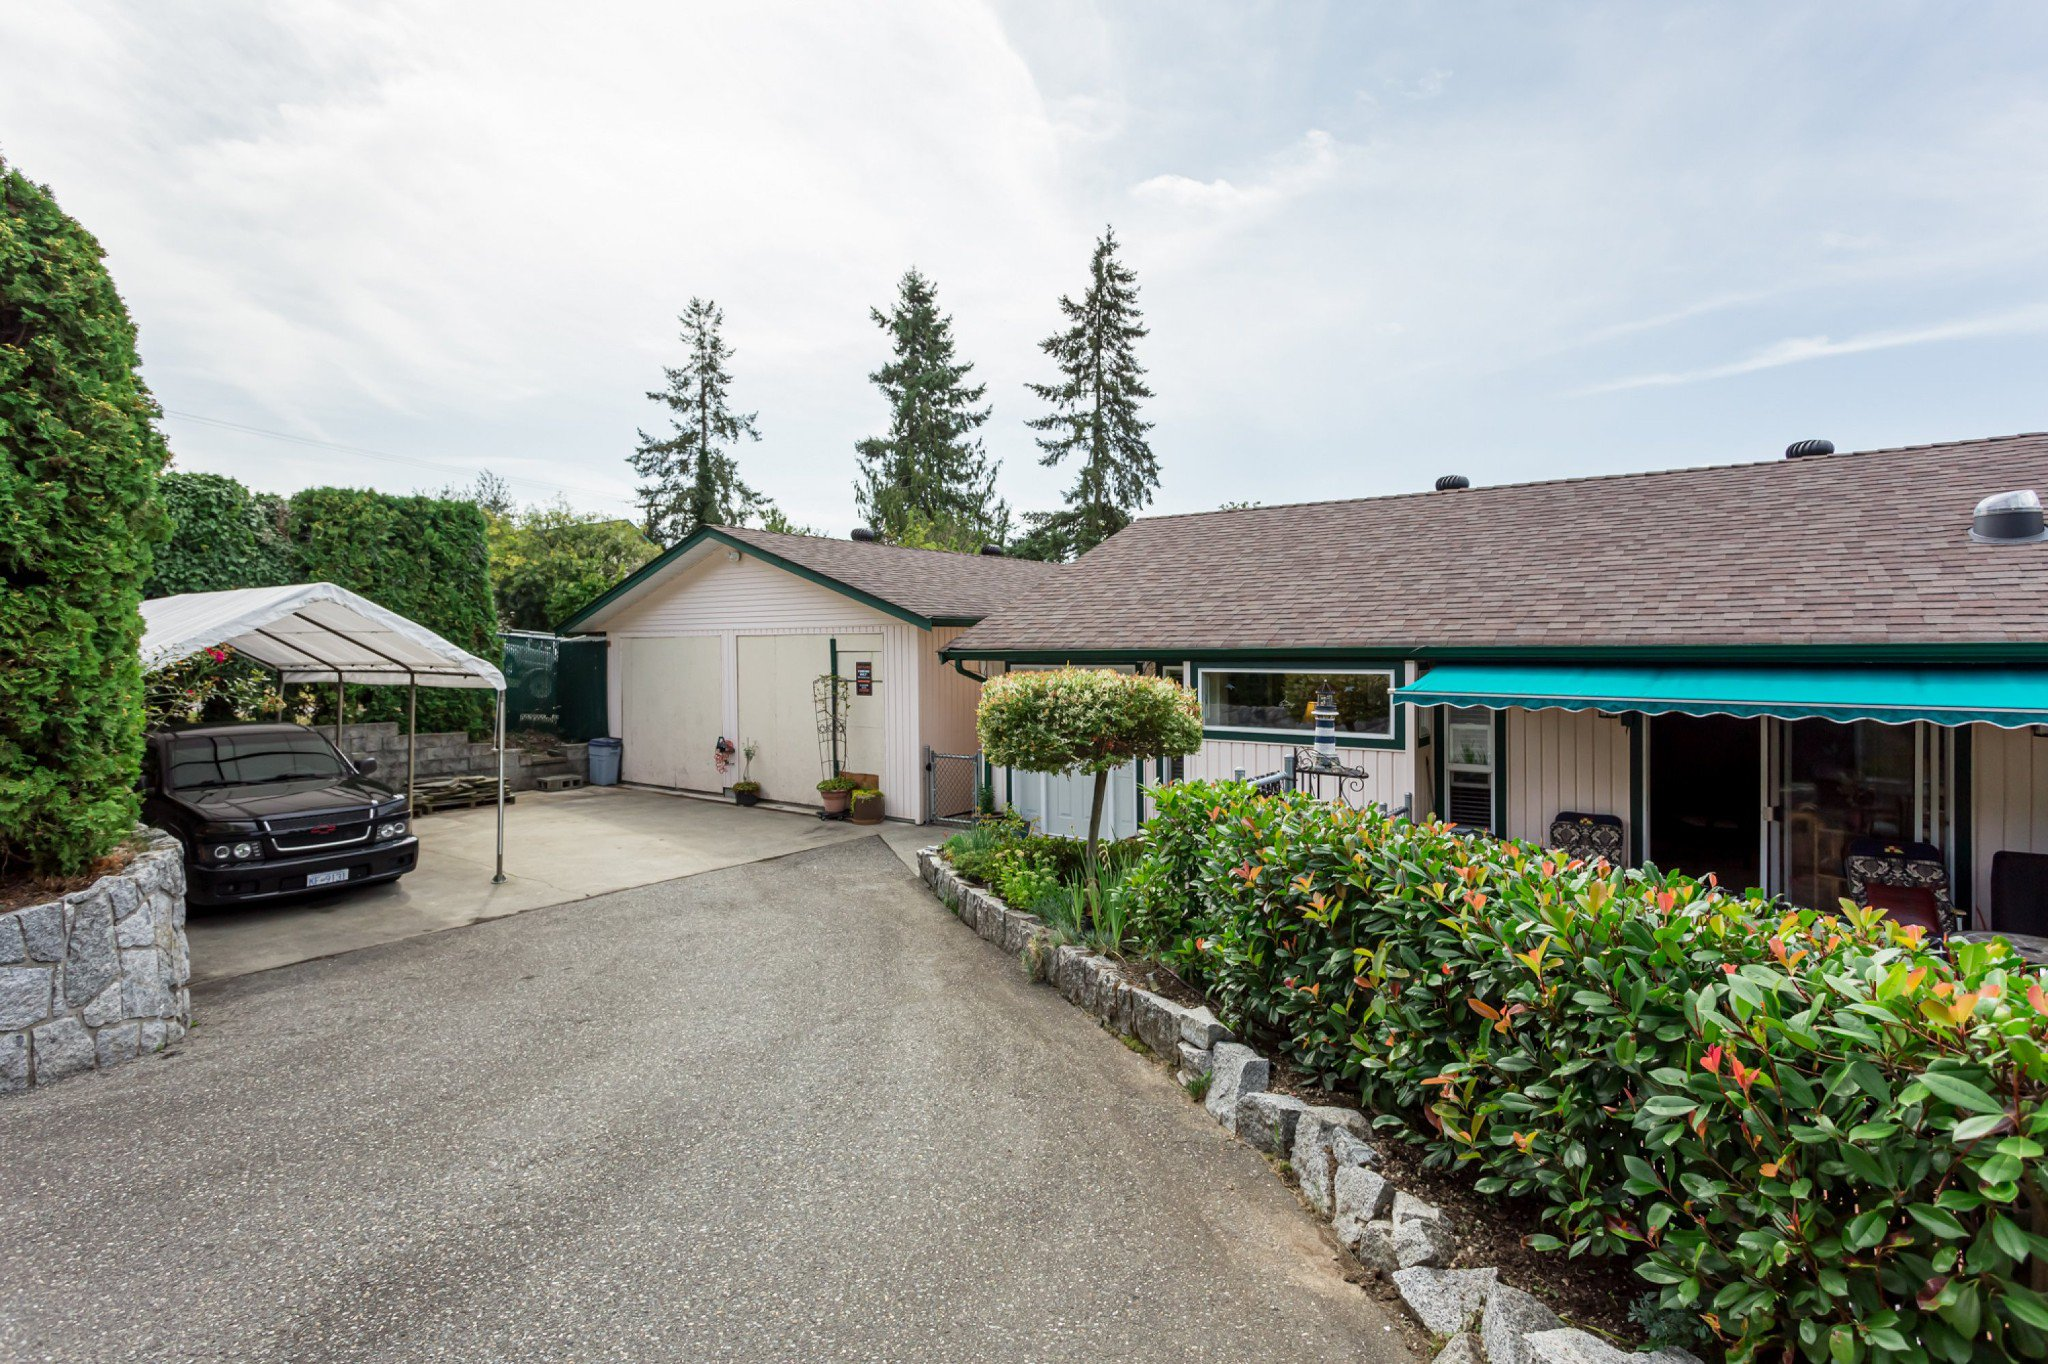 Main Photo: 21710 48A Avenue in Langley: Murrayville House for sale : MLS®# R2399243